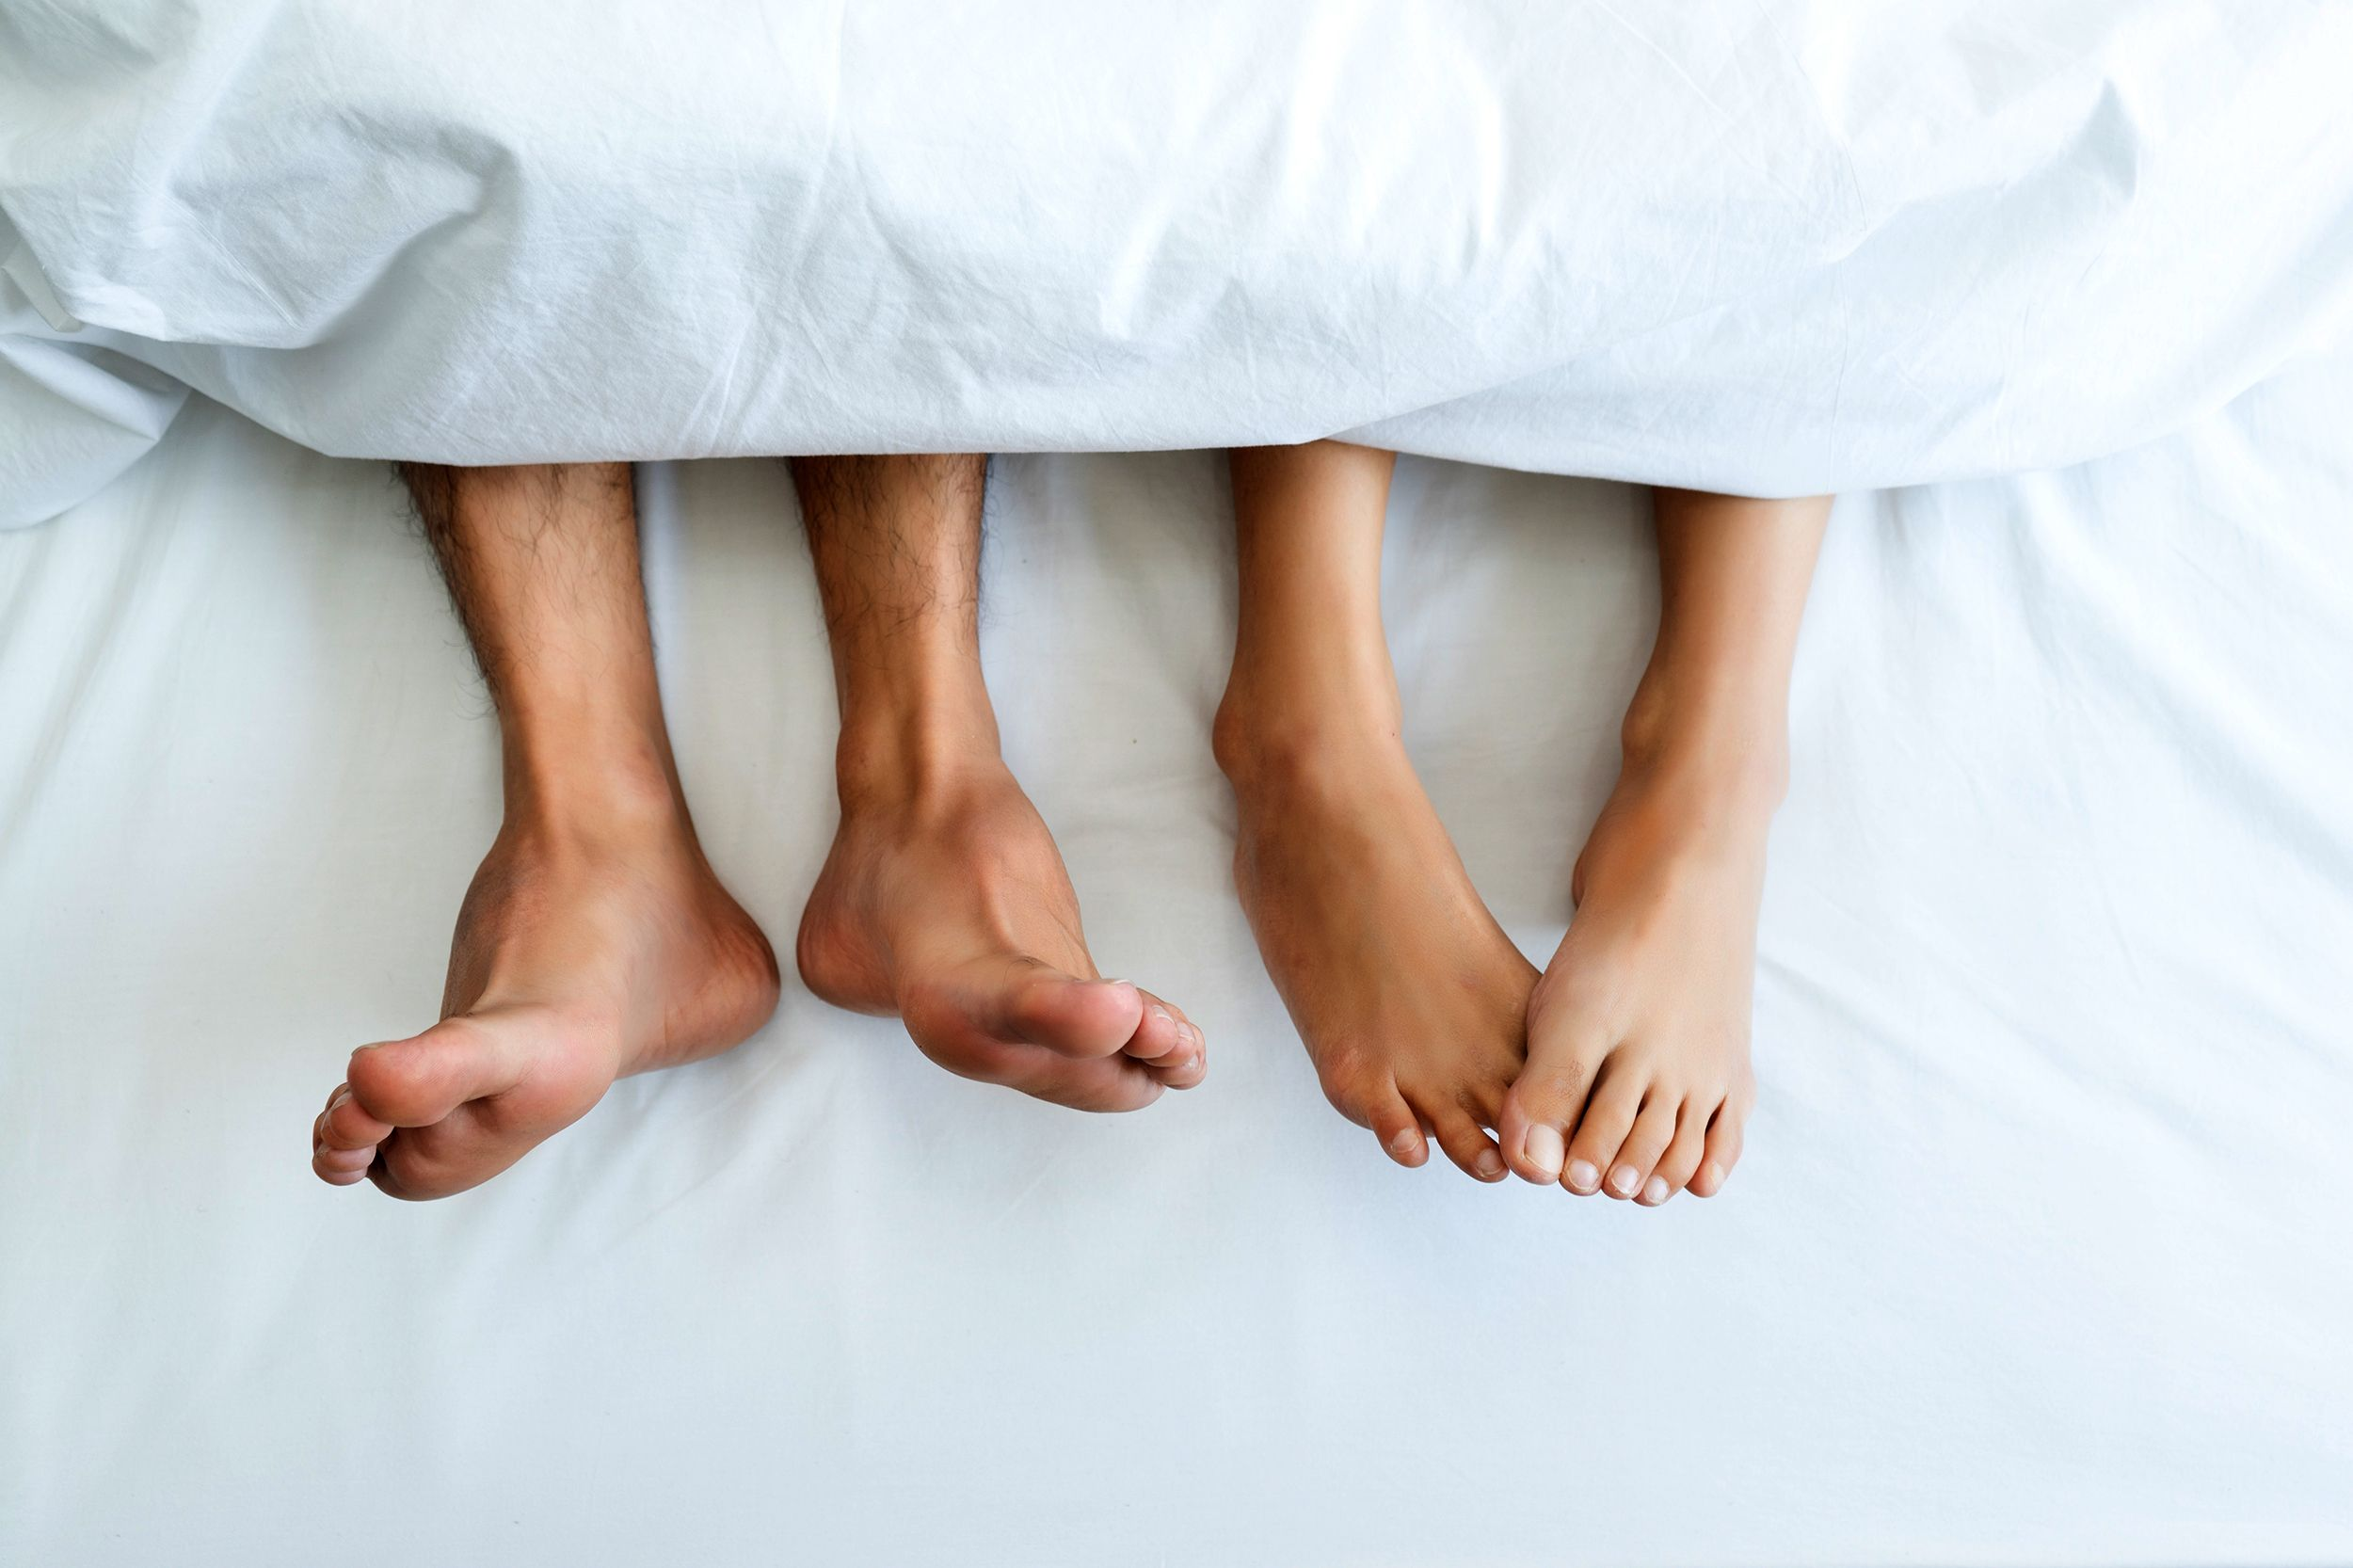 'Dead Bedroom' Relationships Are Super-Common